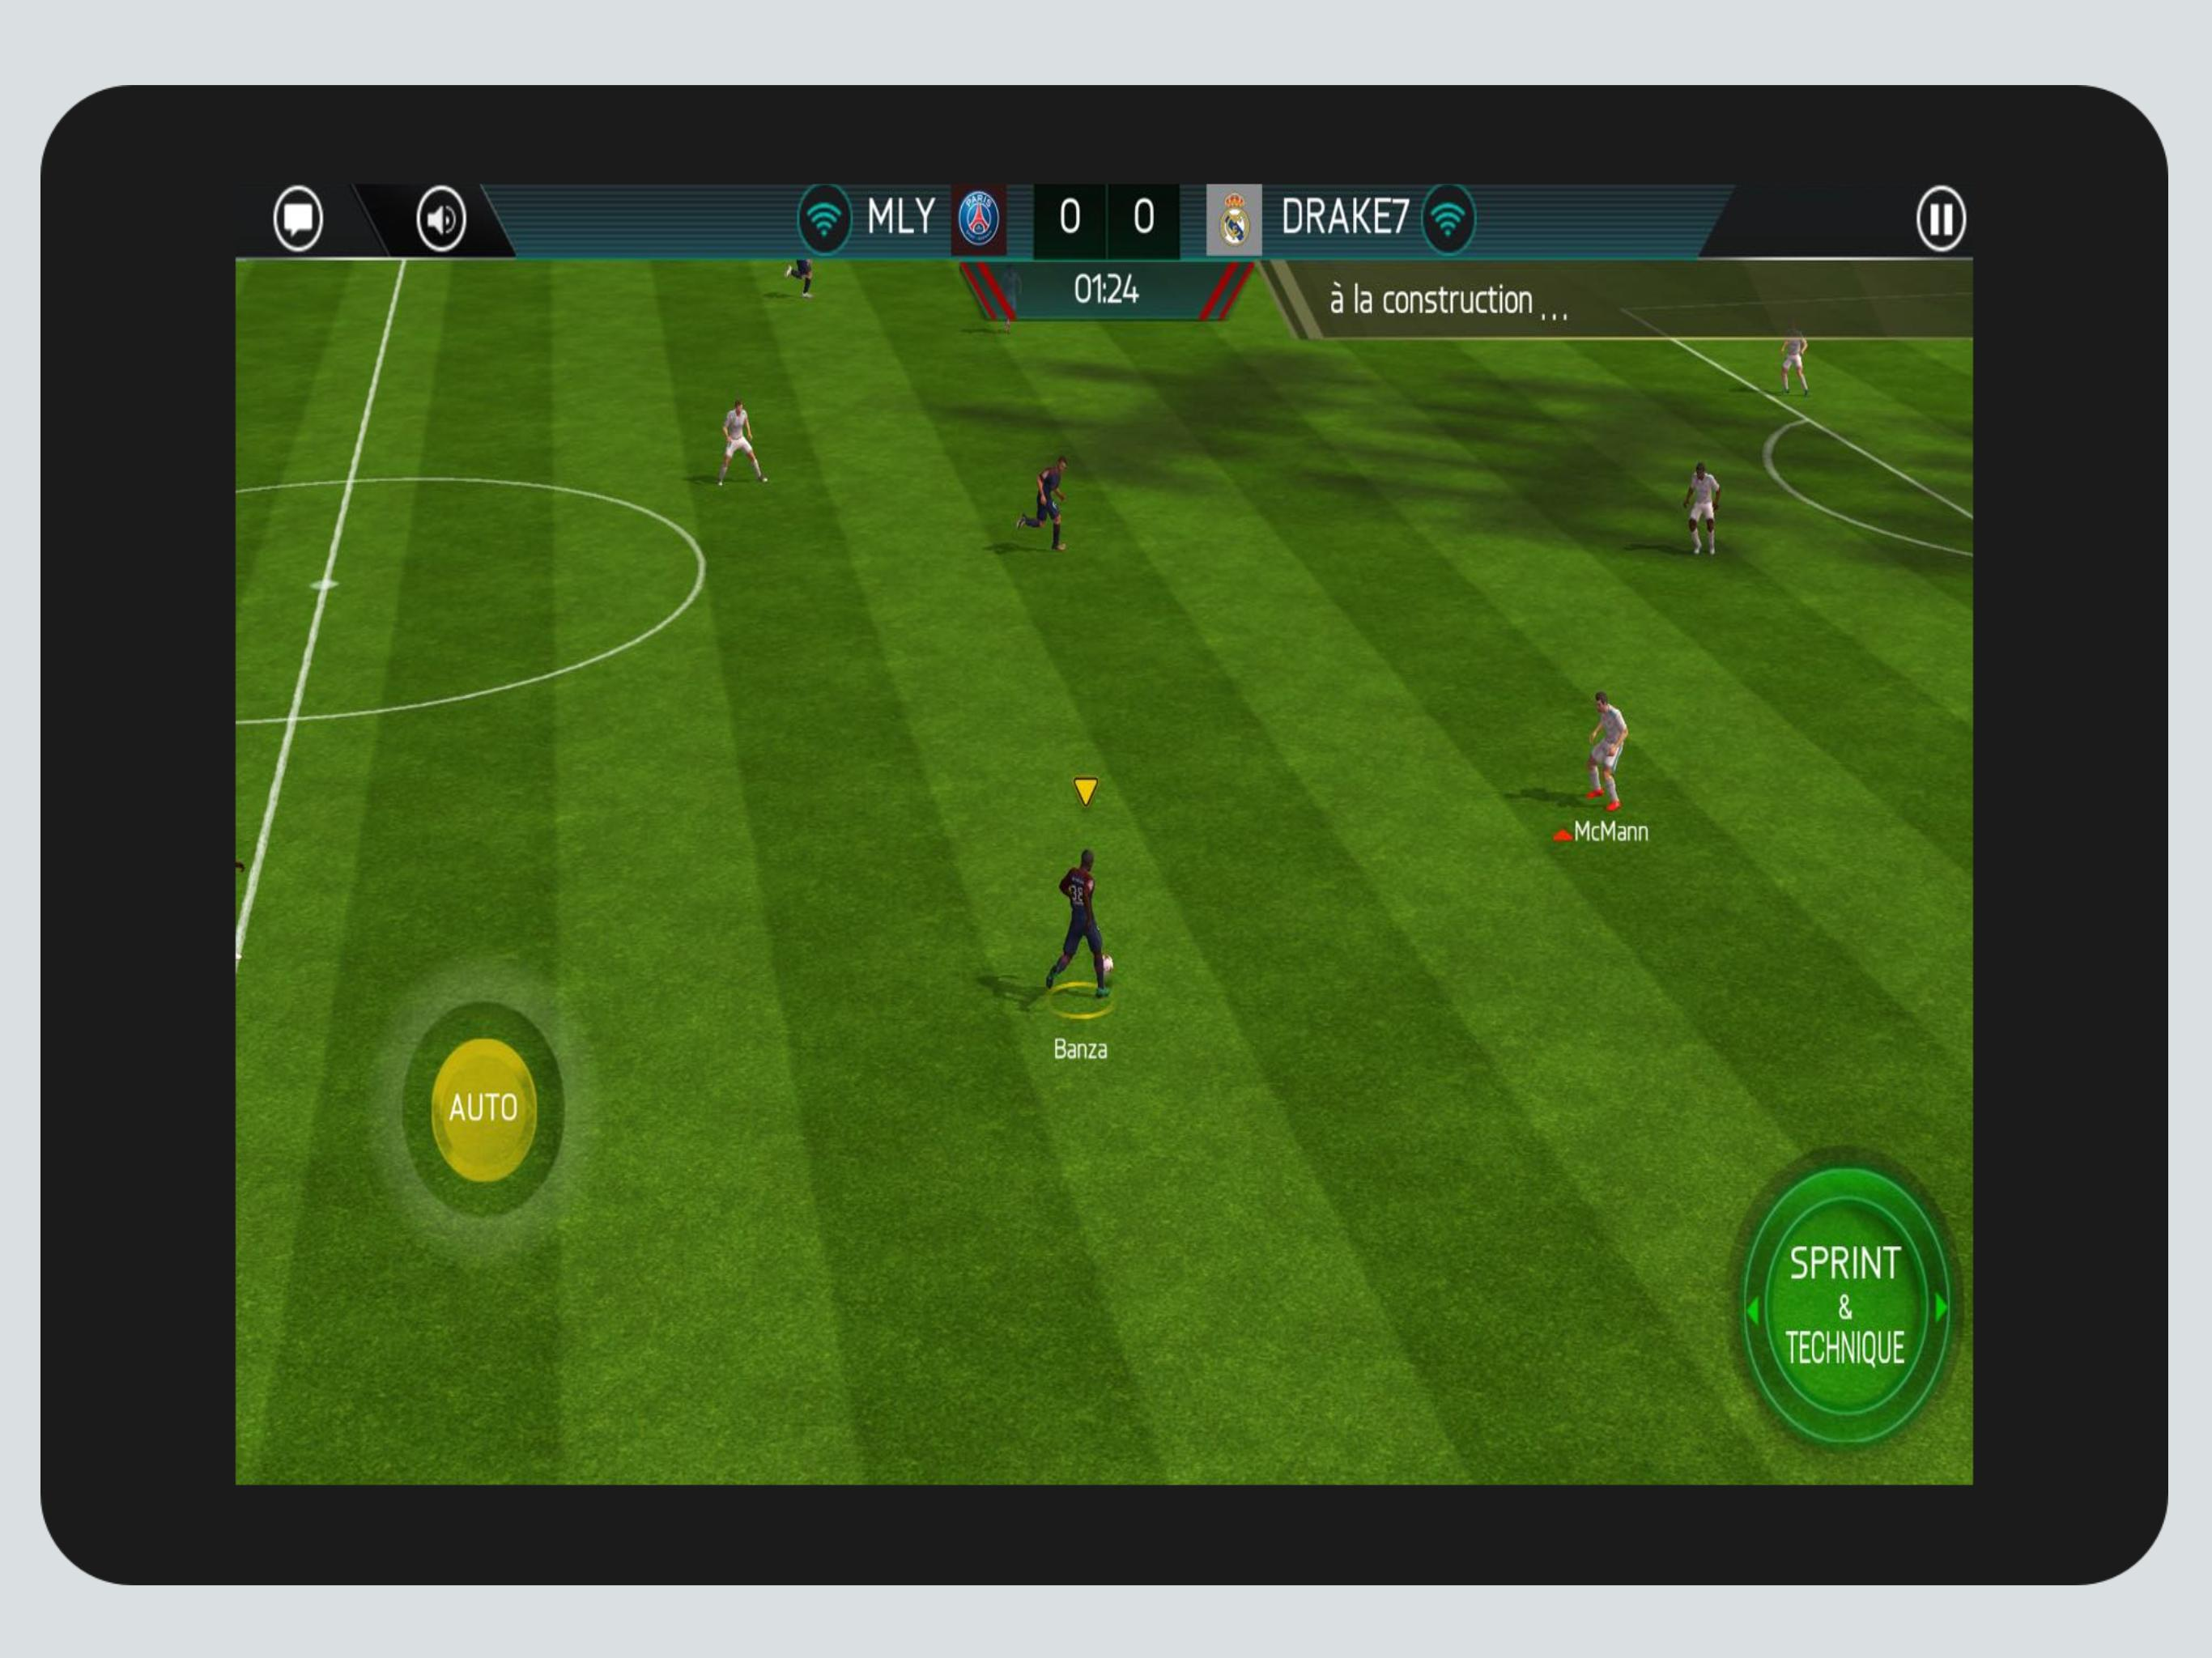 PRO PSP Emulator for Android - APK Download